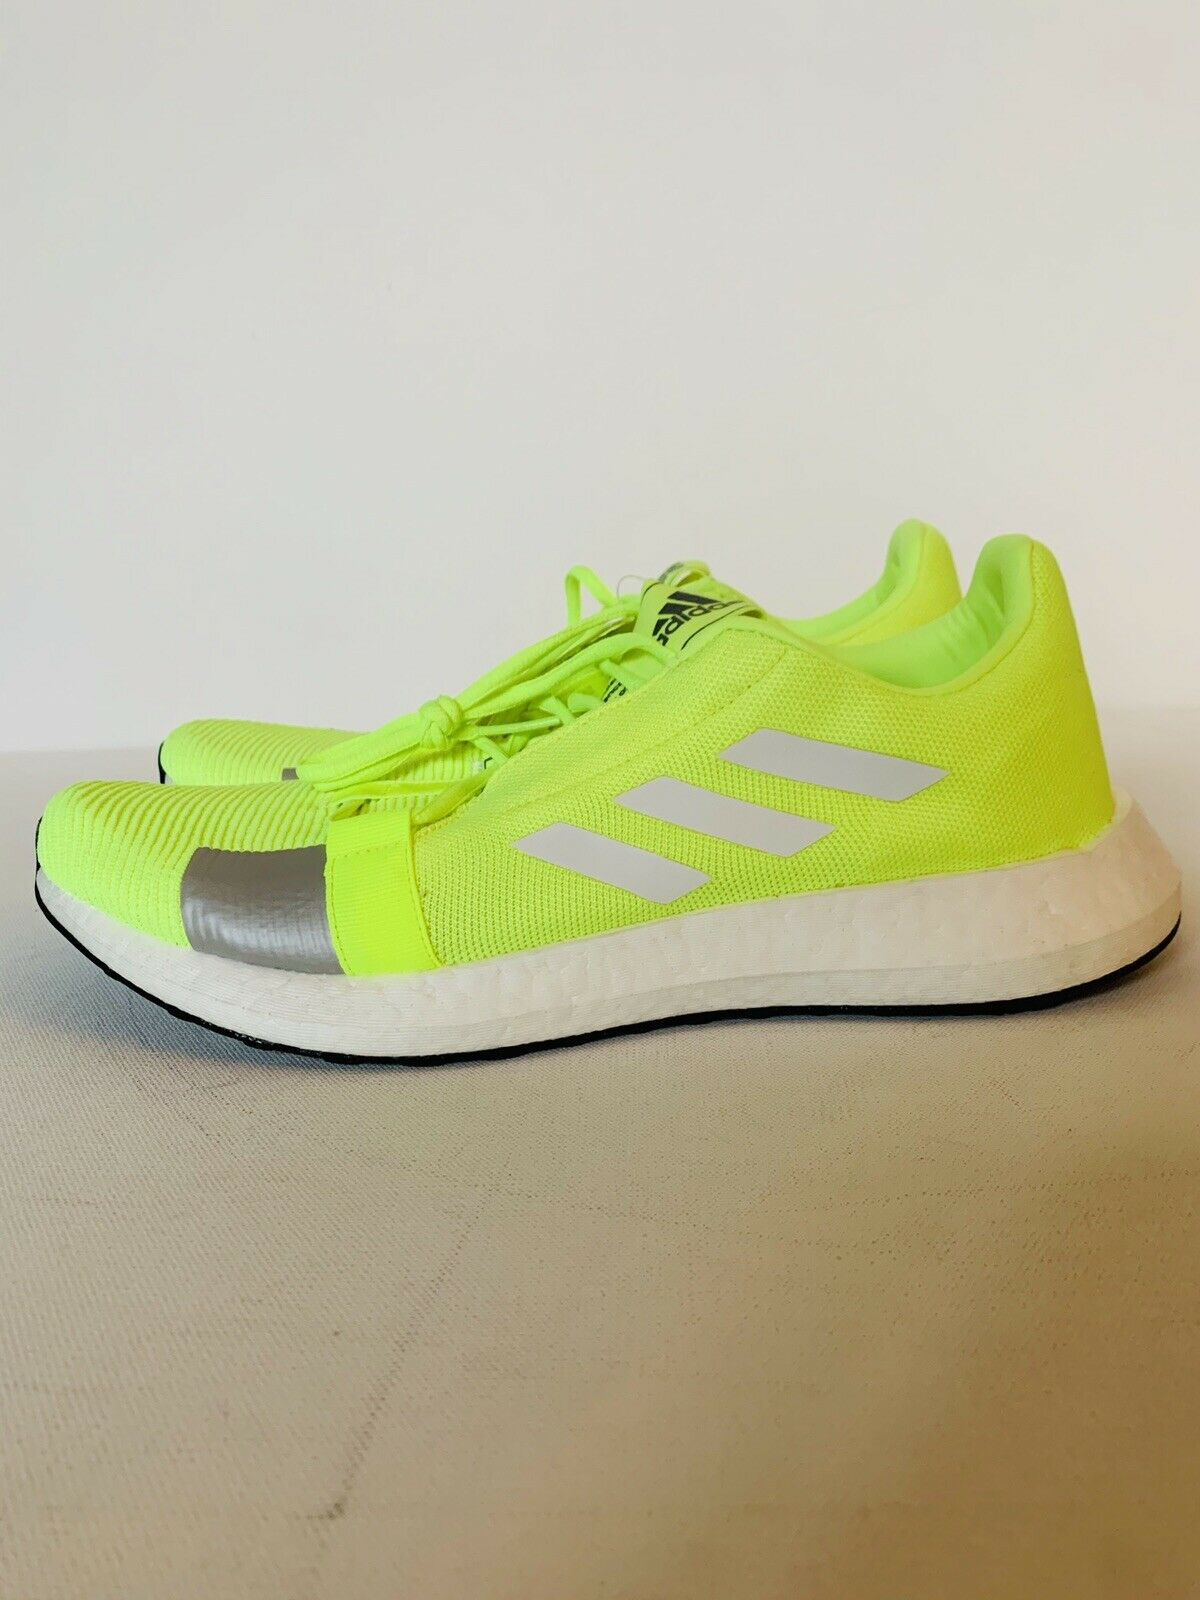 SNEAKERS Running Shoes Neon Yellow